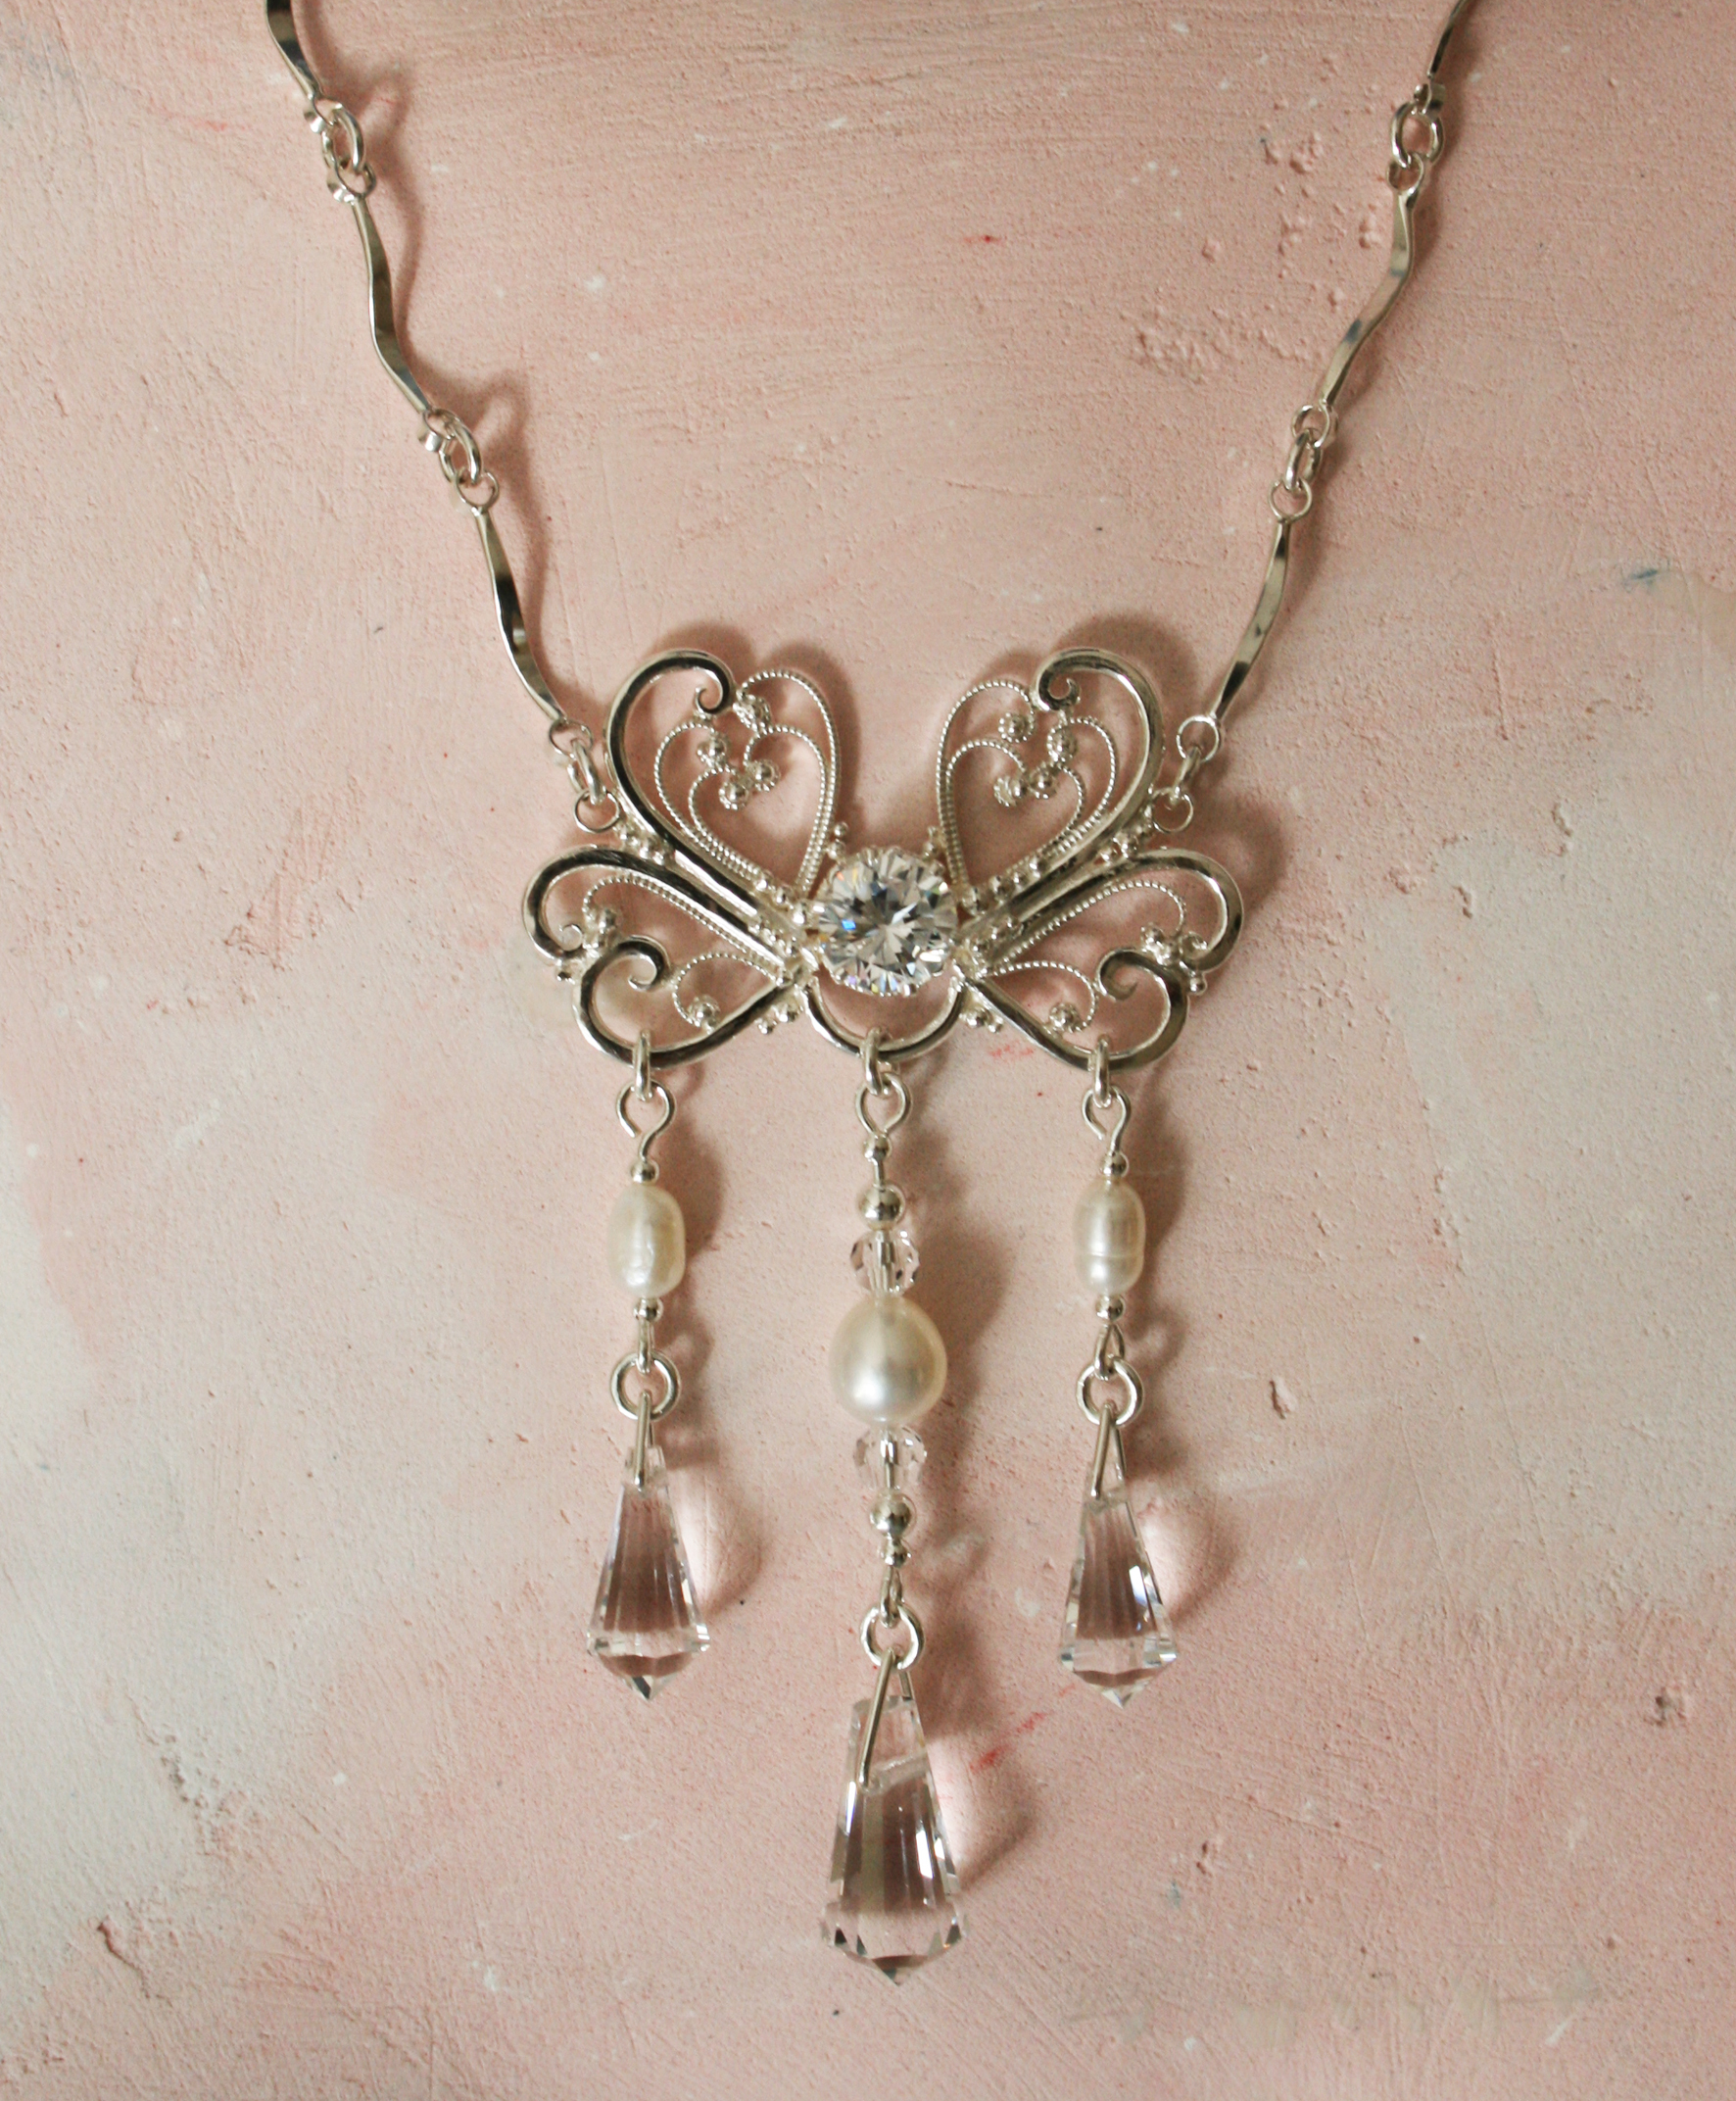 Necklace in filigree